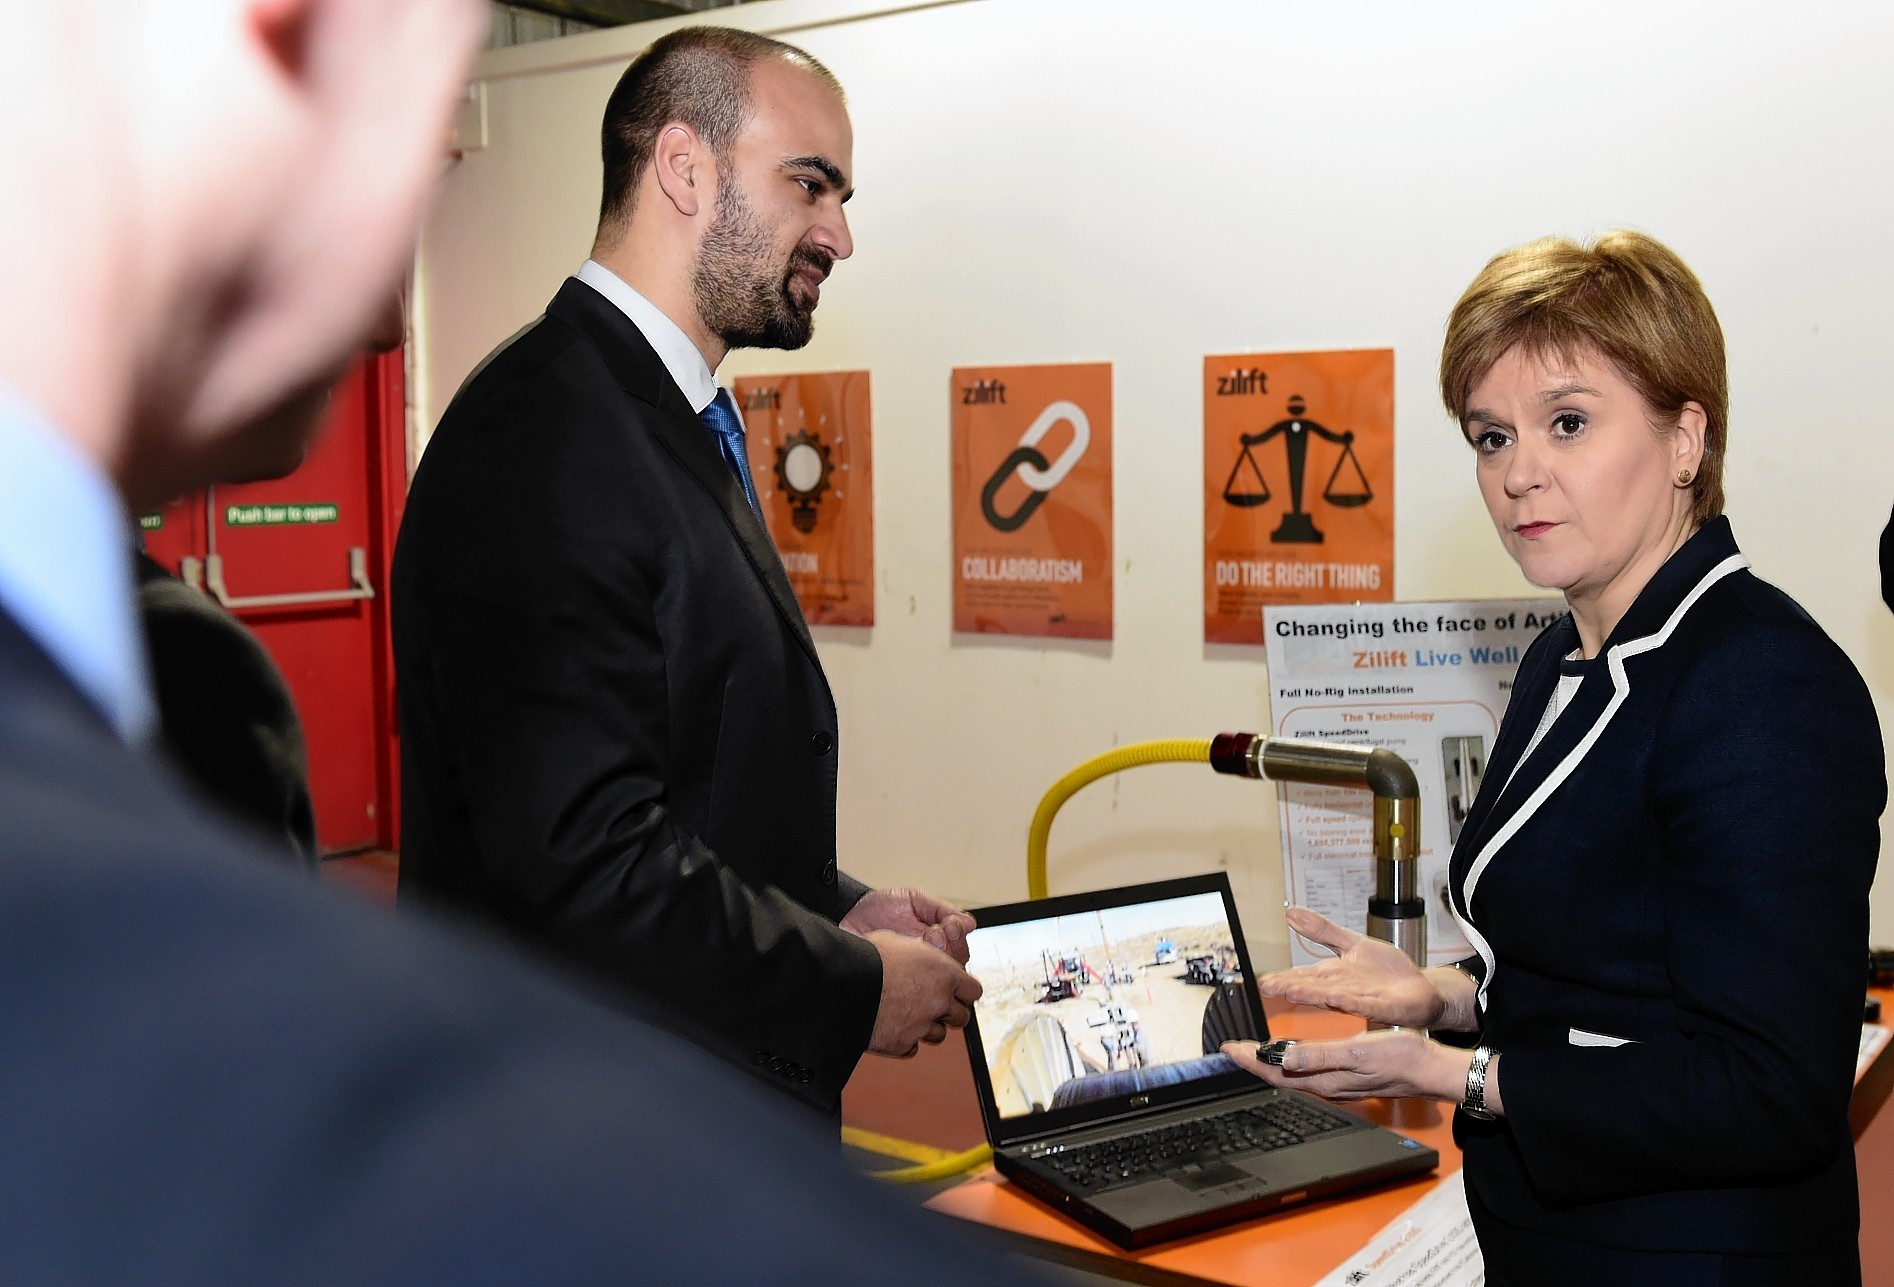 First Minister Nicola Sturgeon at Zilift, SpeedDrive Business Unit, with Mike Rushby, Manager of SpeedDrive Business Unit.